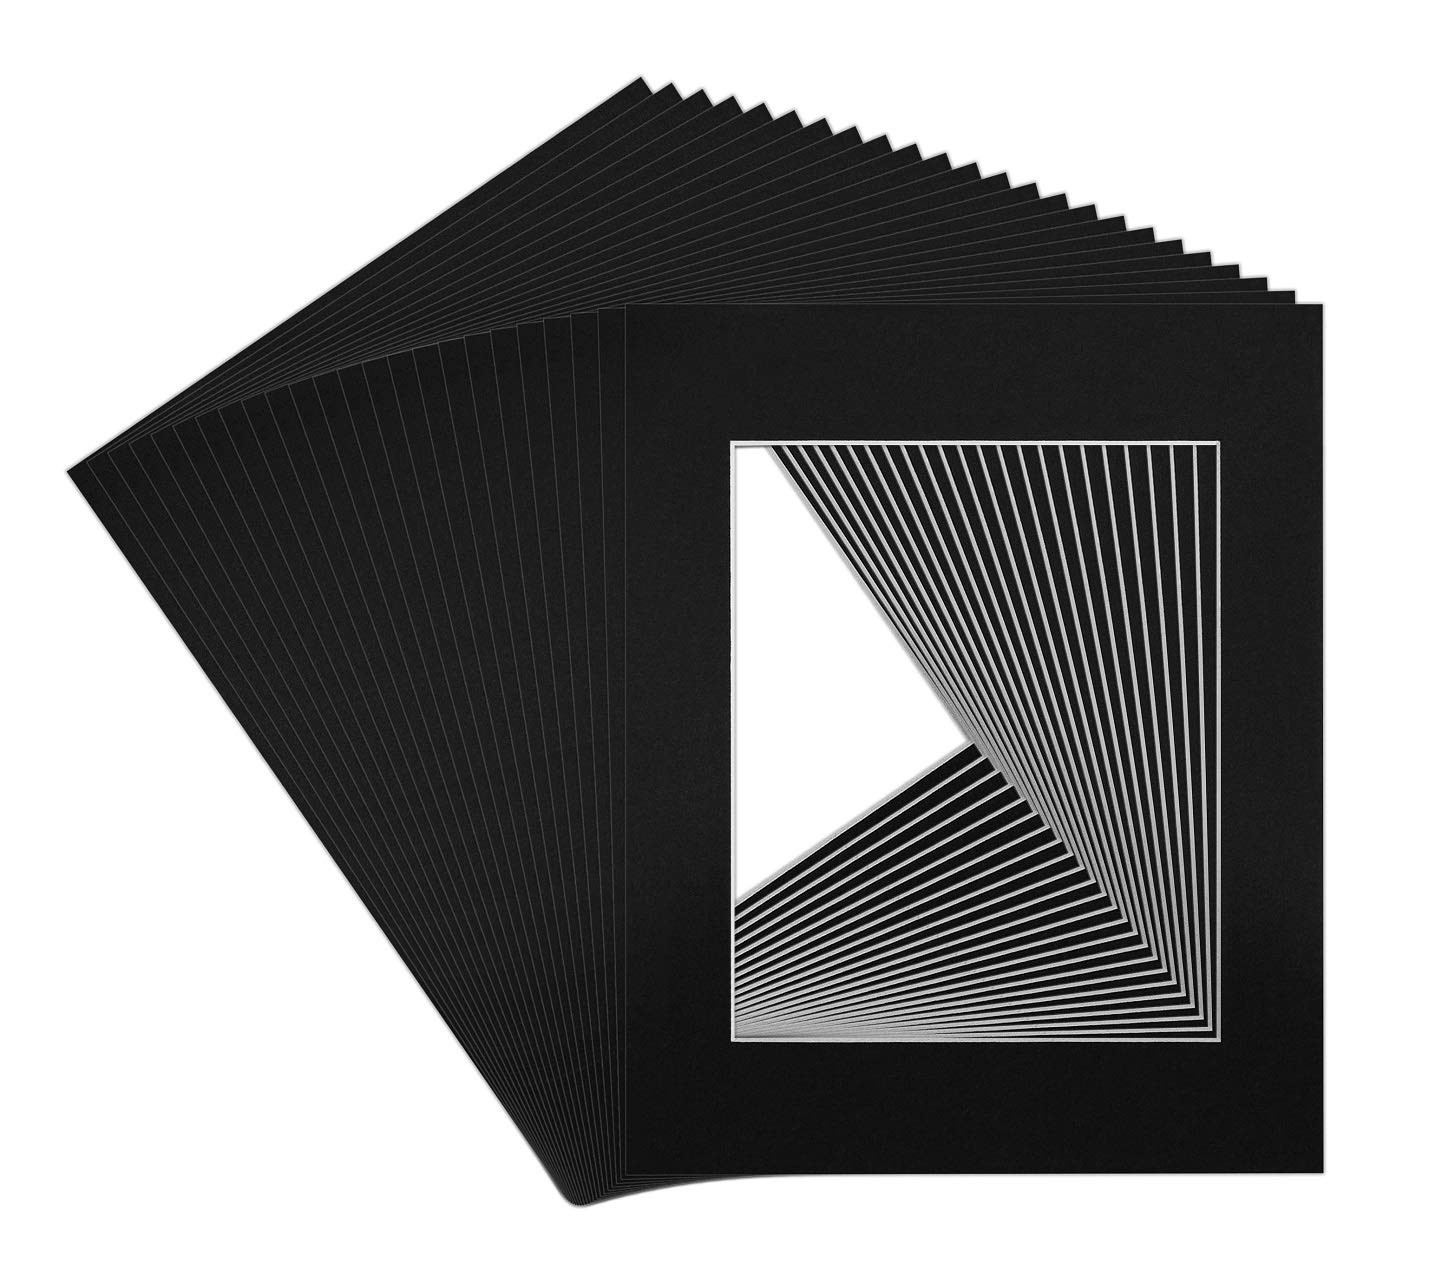 Golden State Art, Acid Free, Pack of 25 11x14 Black Picture Mats Mattes with White Core Bevel Cut for 8x10 Photo